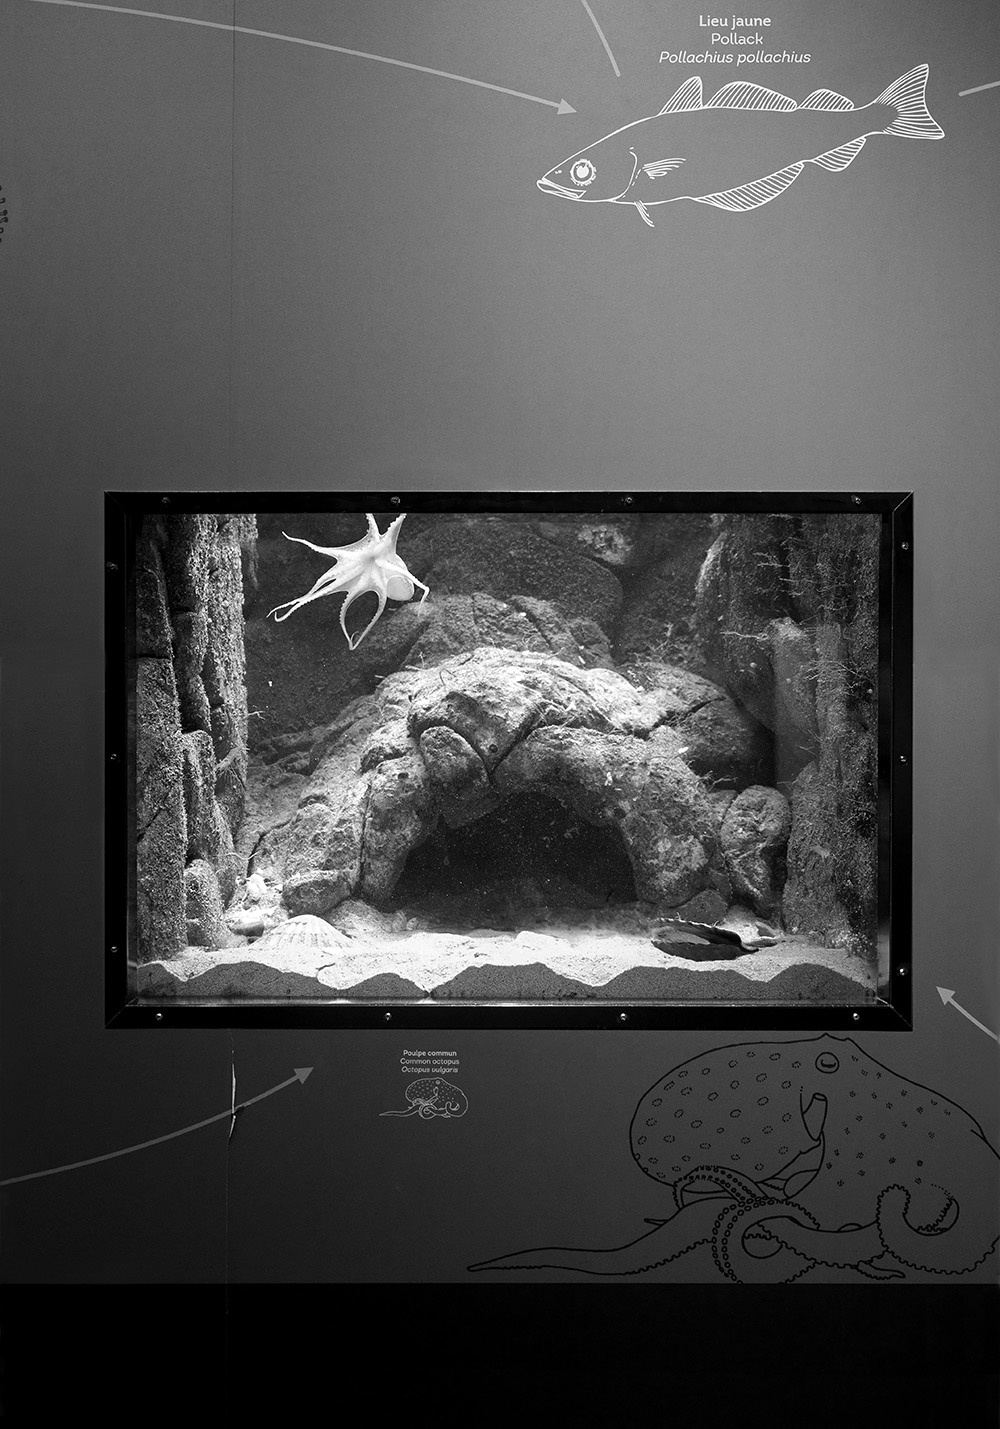 4. The Octopus in her/his Tank